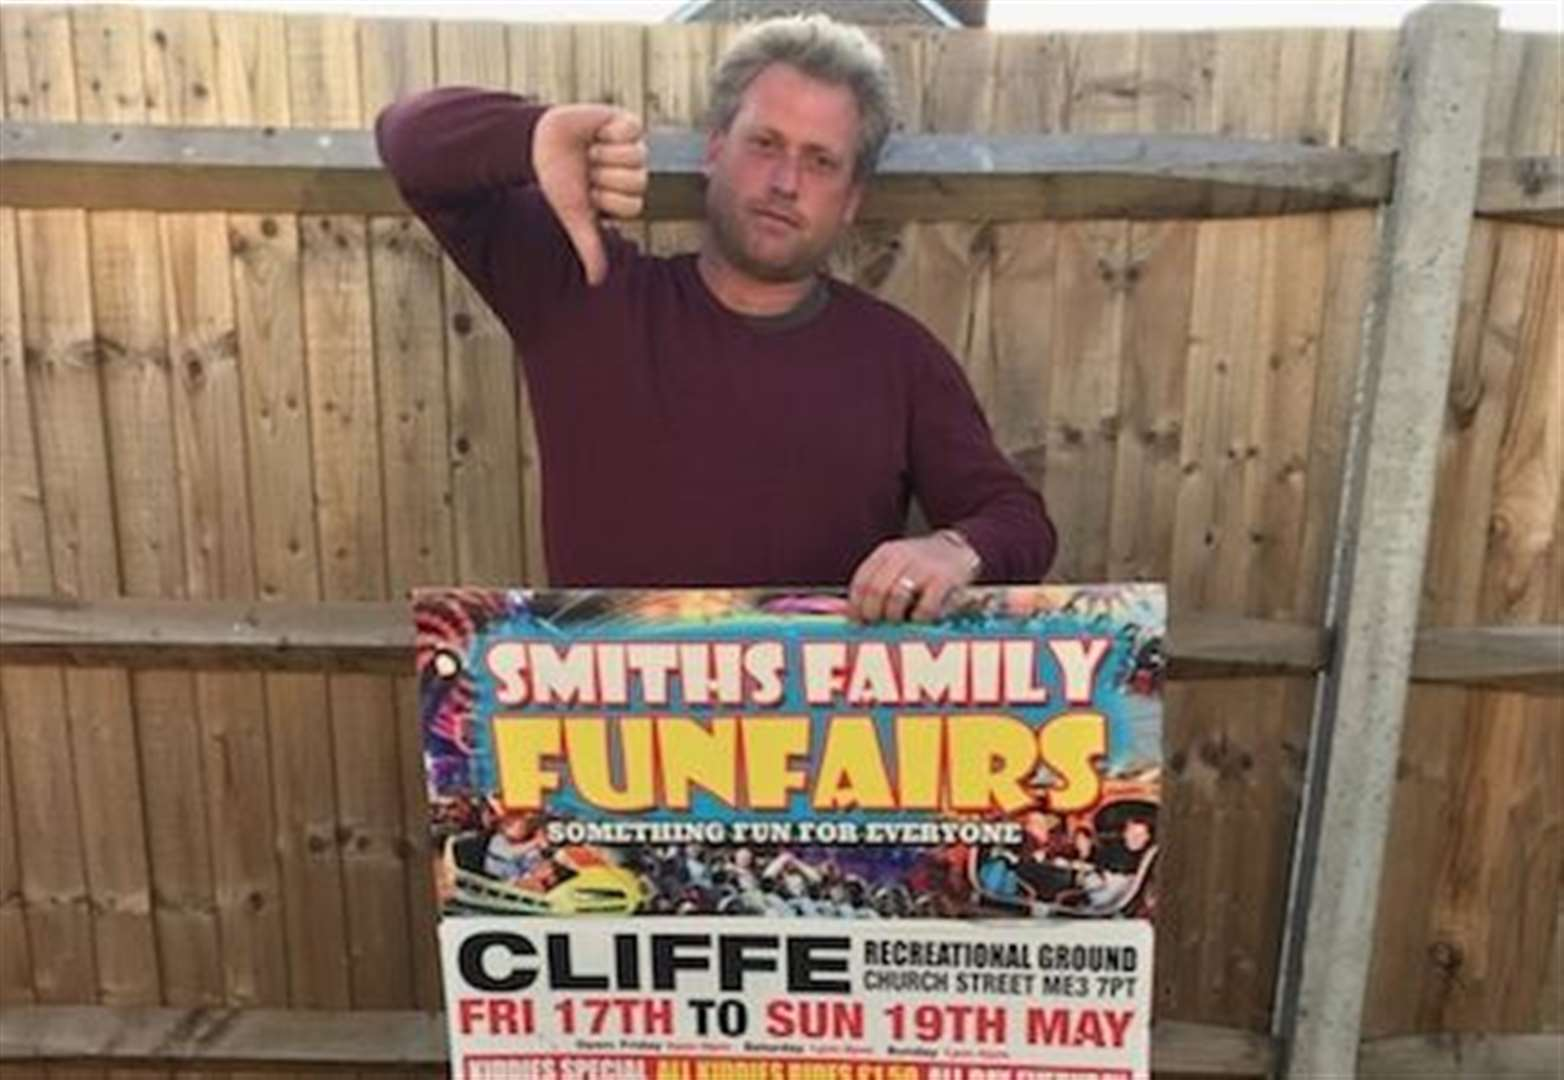 Council worker's 'racial slur' at funfair boss